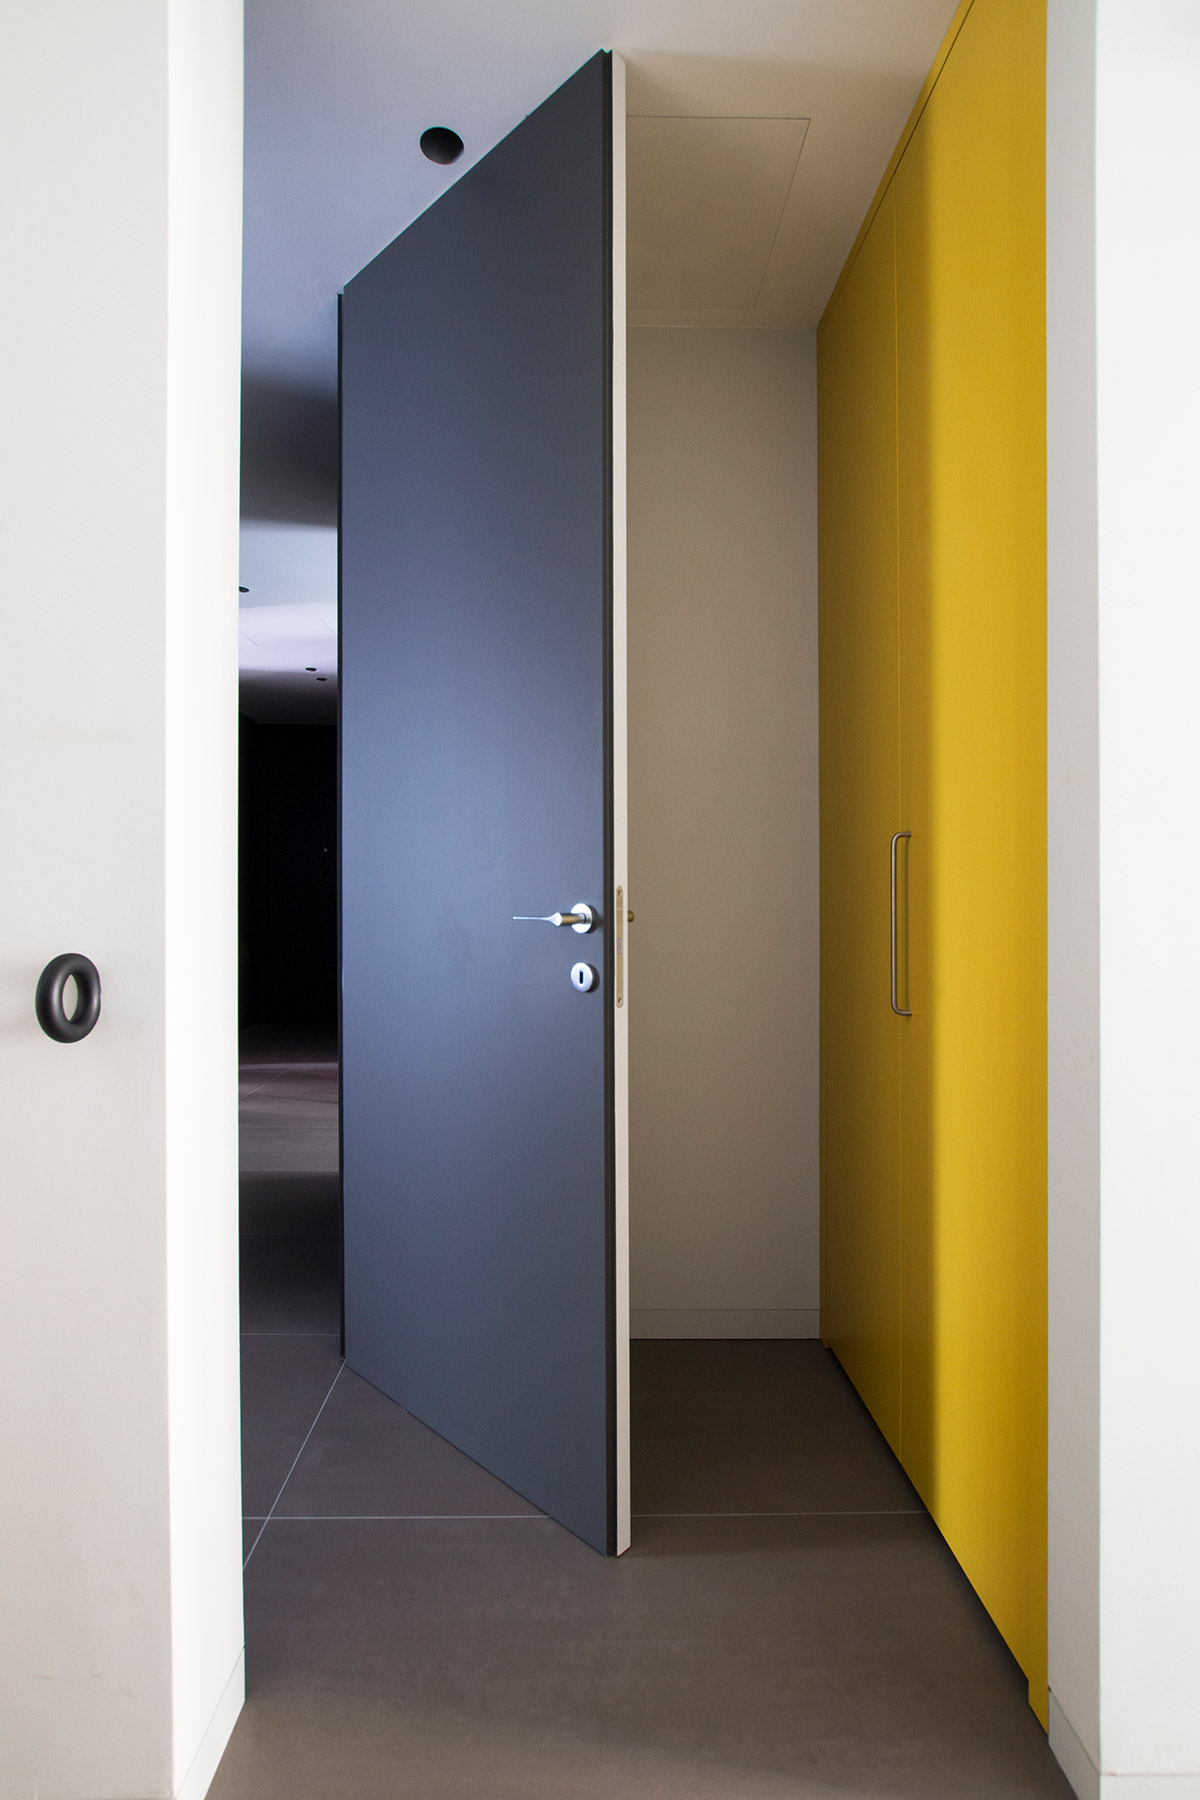 kickoffice casa df opening door color blue yellow